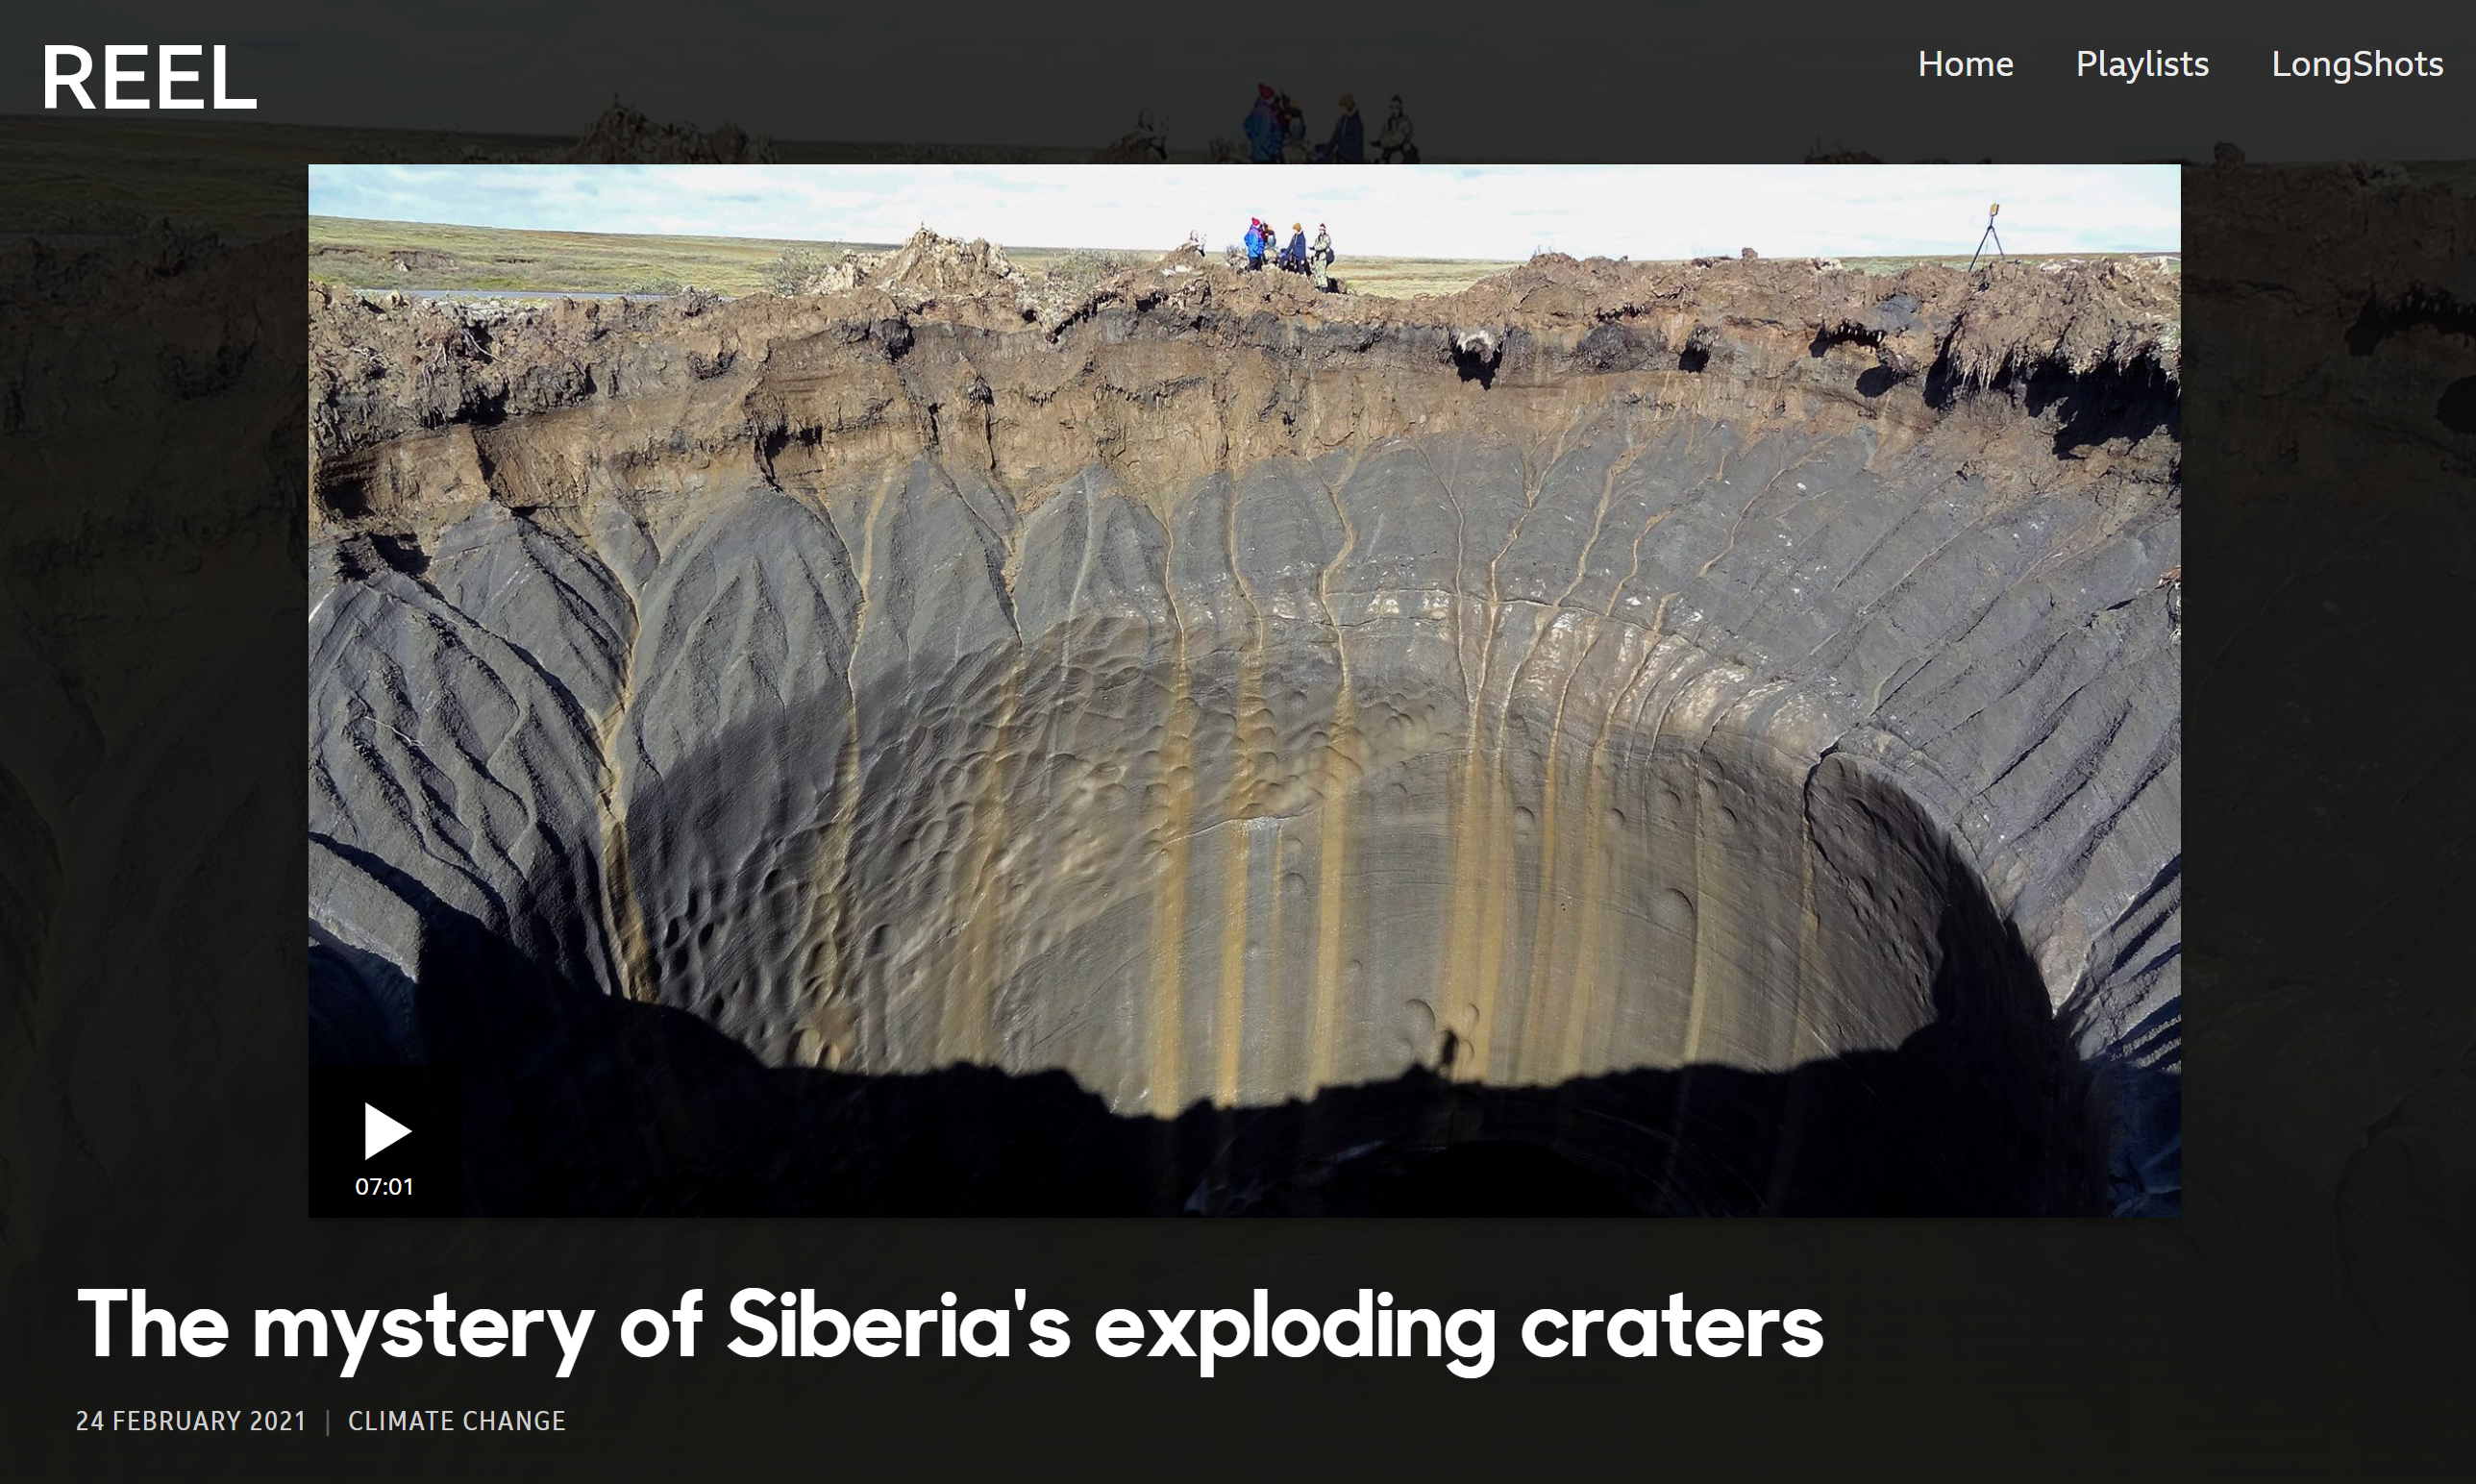 BBC Reel of The Mystery of Siberia's Exploding Craters